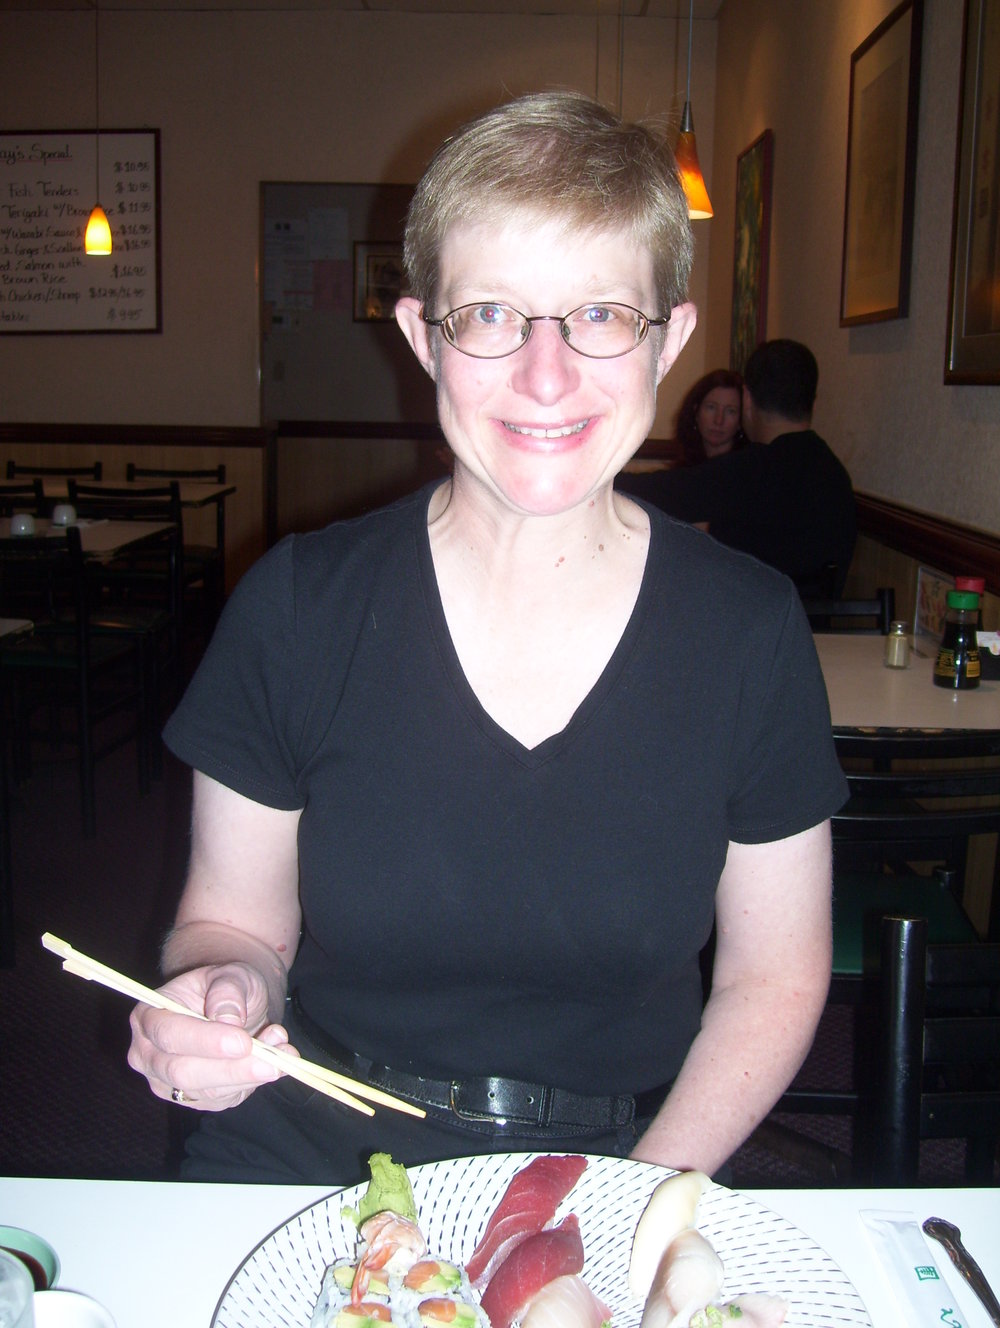 PIcture of Keyboard Cathy eating sushi